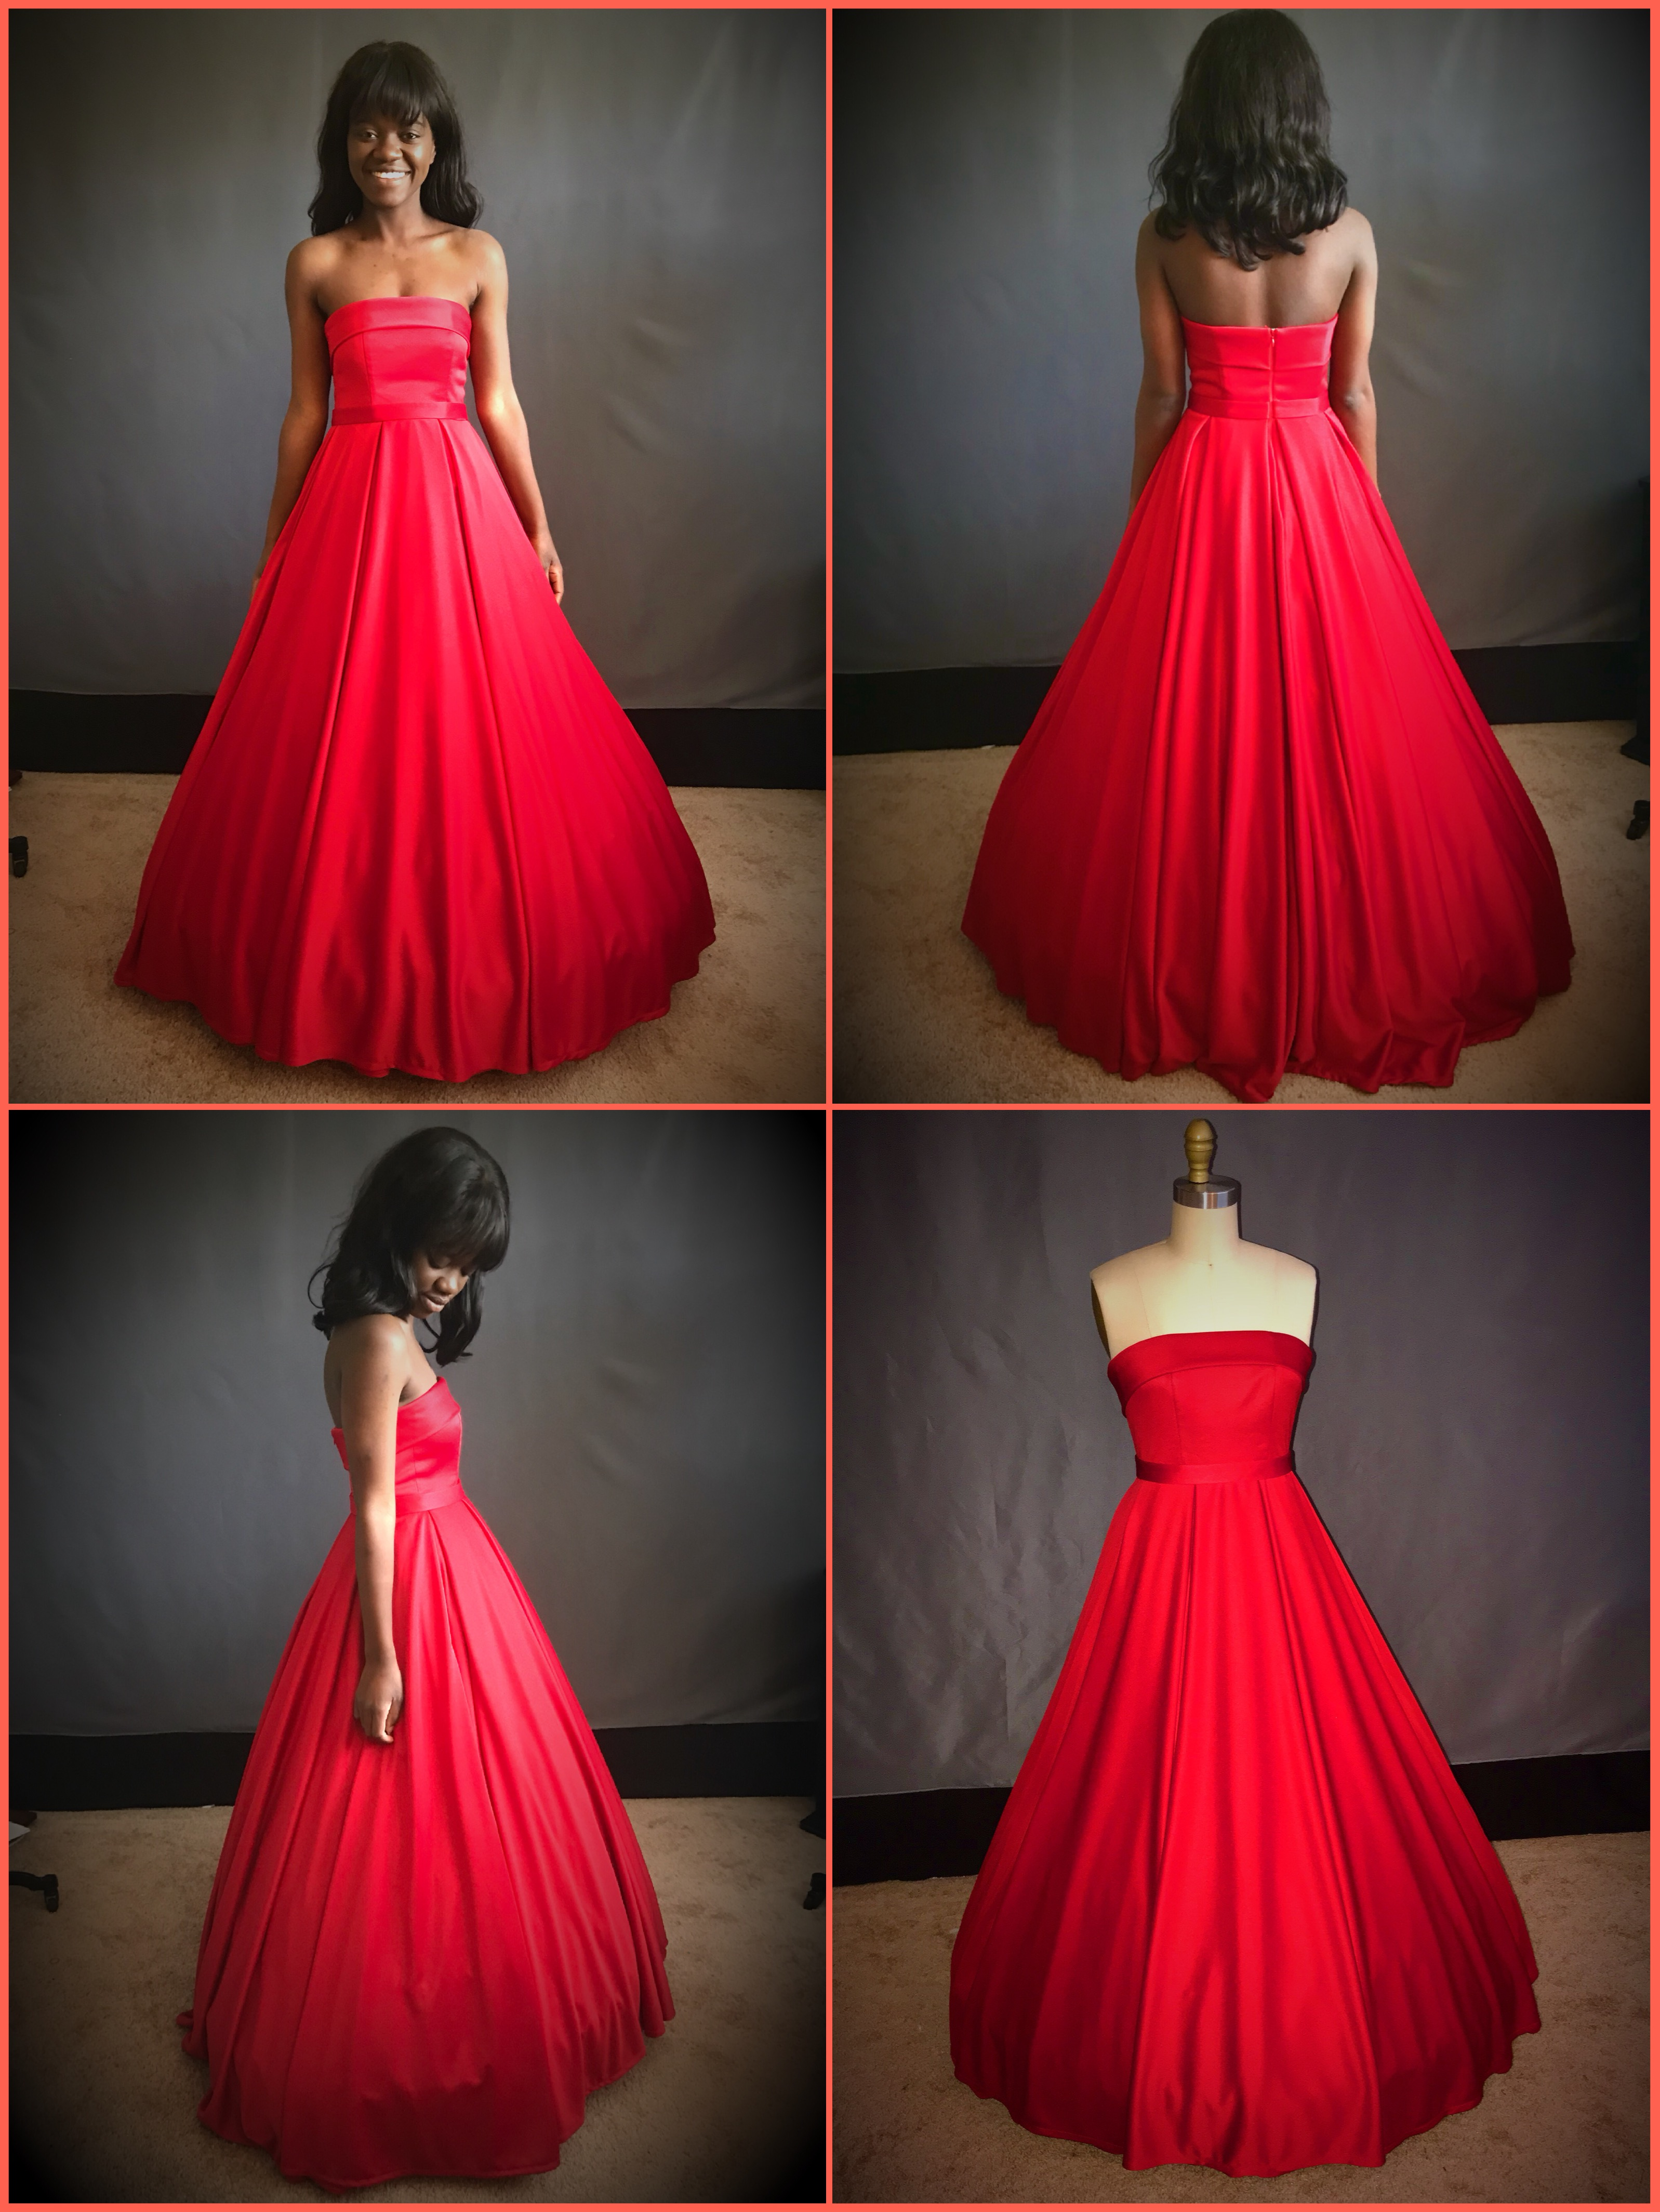 custom prom dress / seamstress